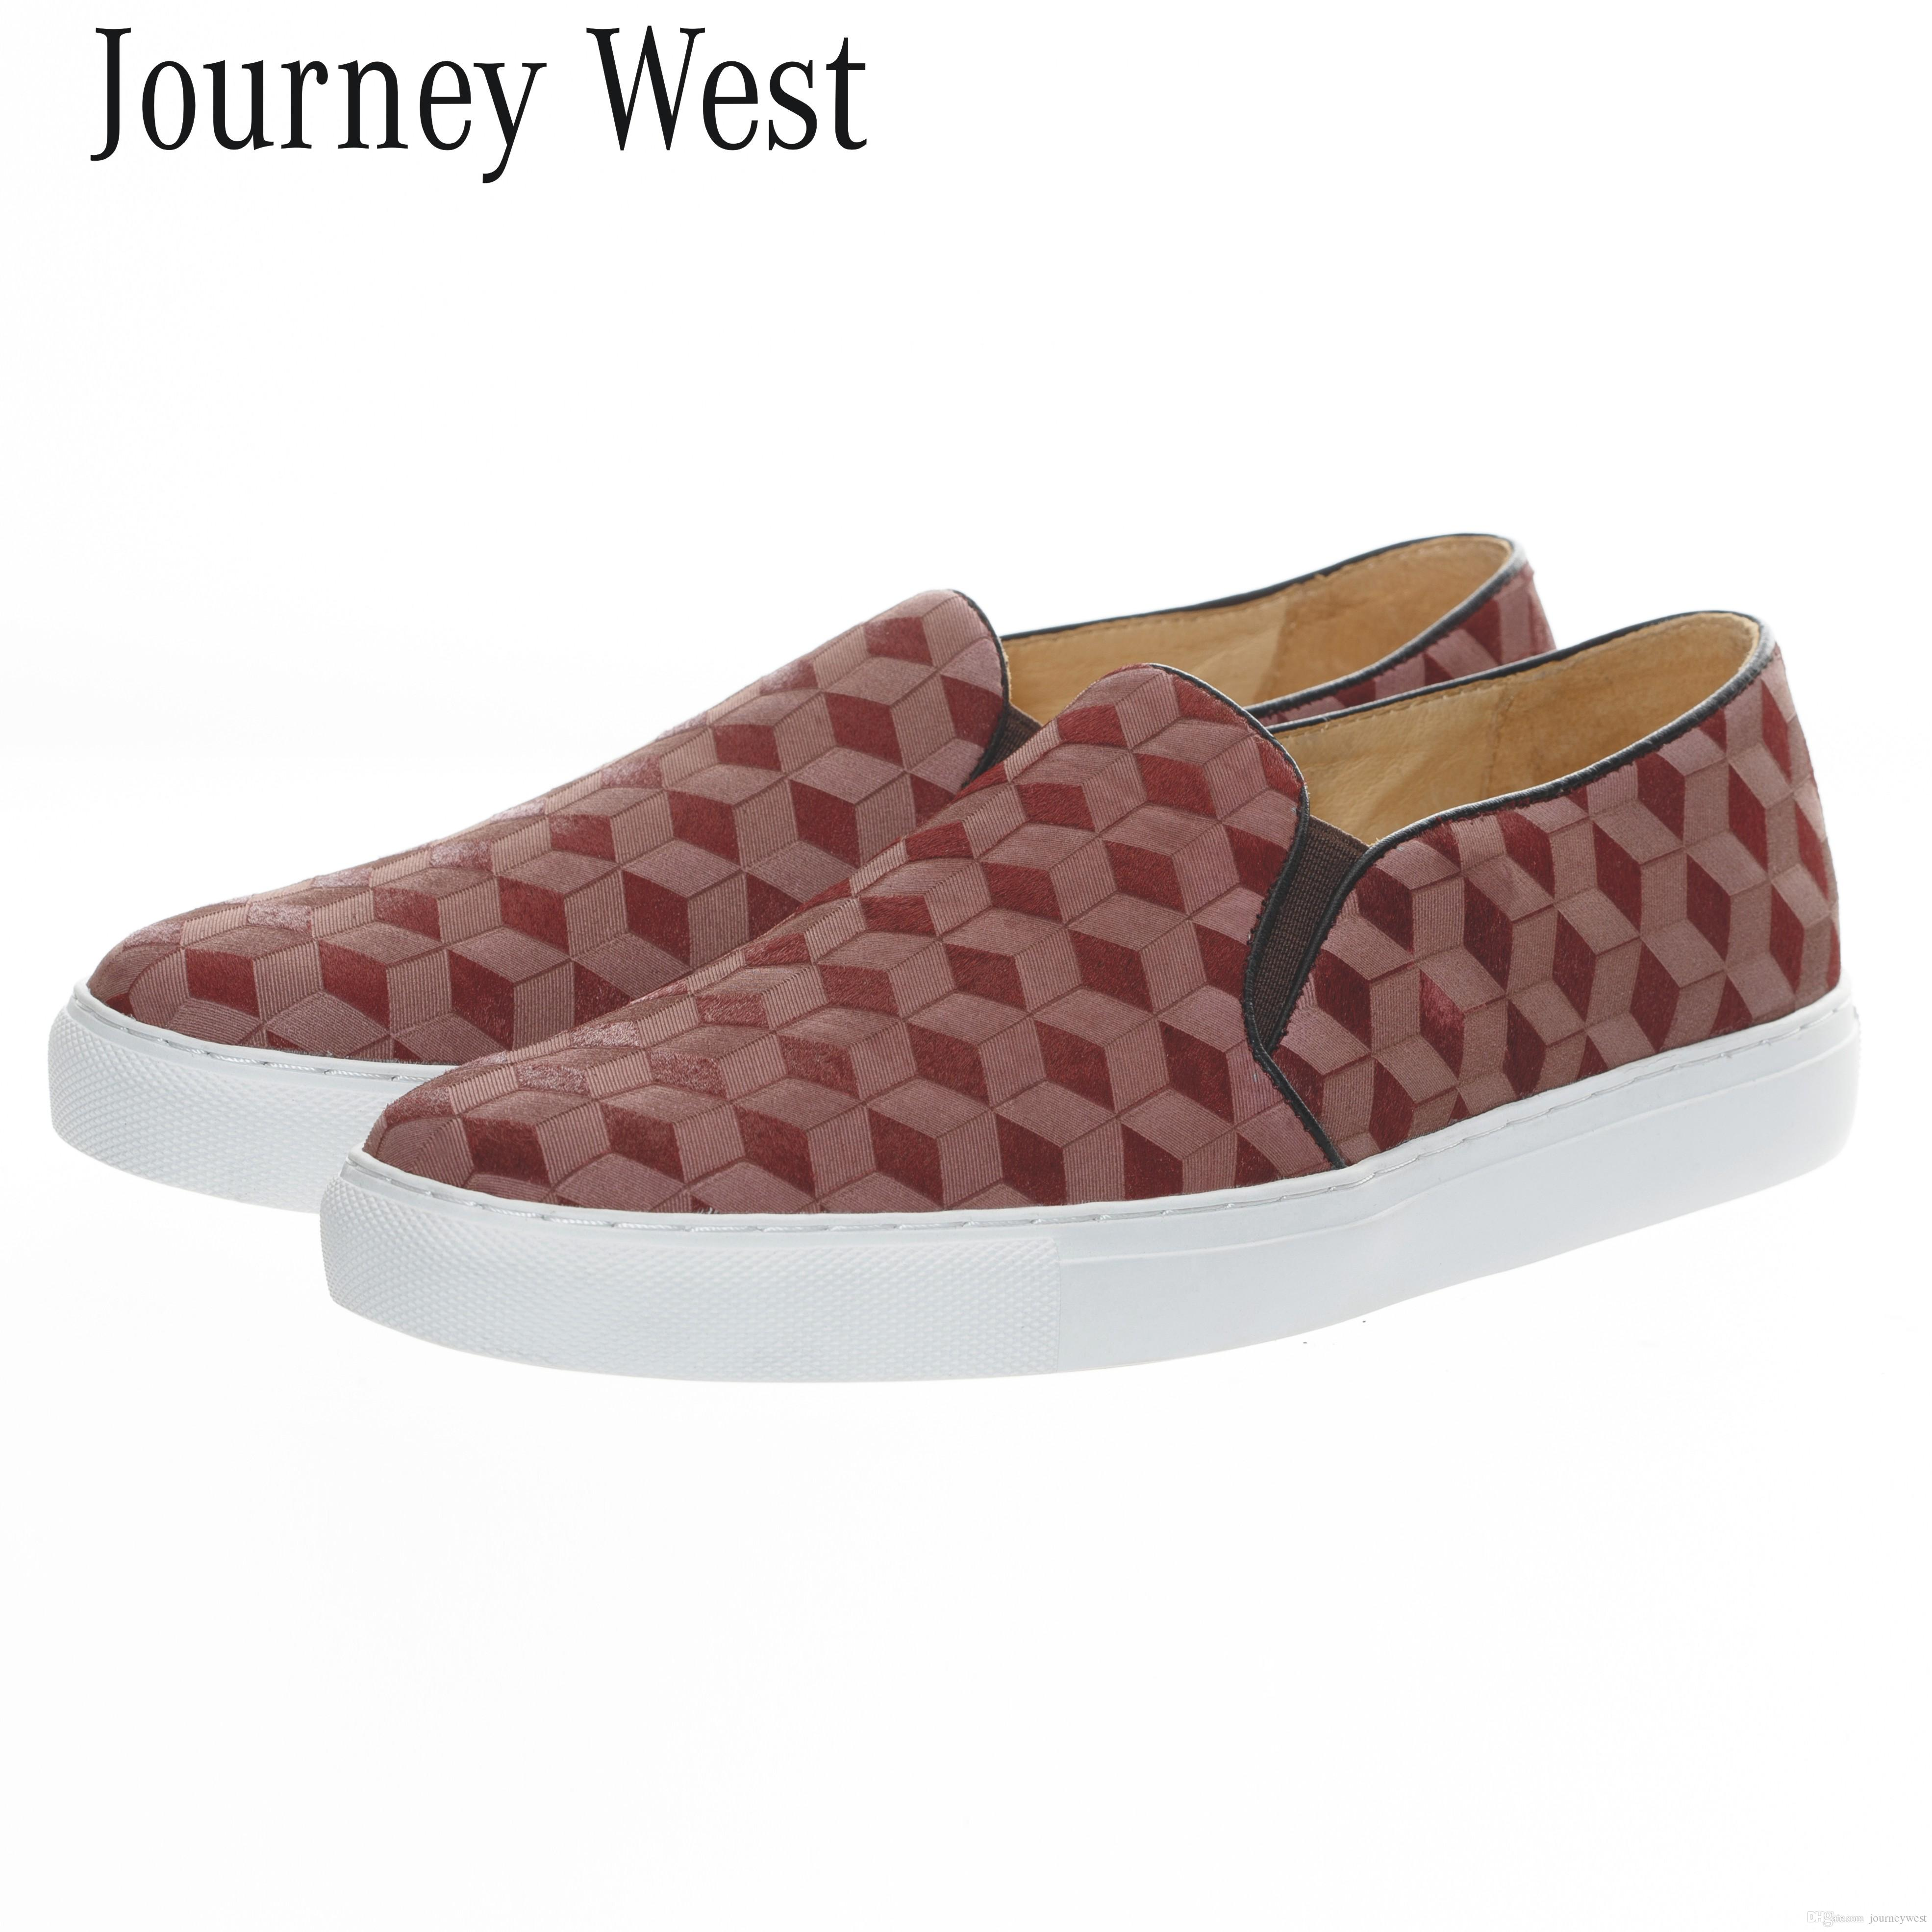 503787c28c0 Handmade Red Horsehair Fashion Sneakers Men Leather Loafers Slip On Men S  Flats Casual Shoes Luxury Designer Laser Engraving Shoes US 6 13 Slip On  Shoes ...